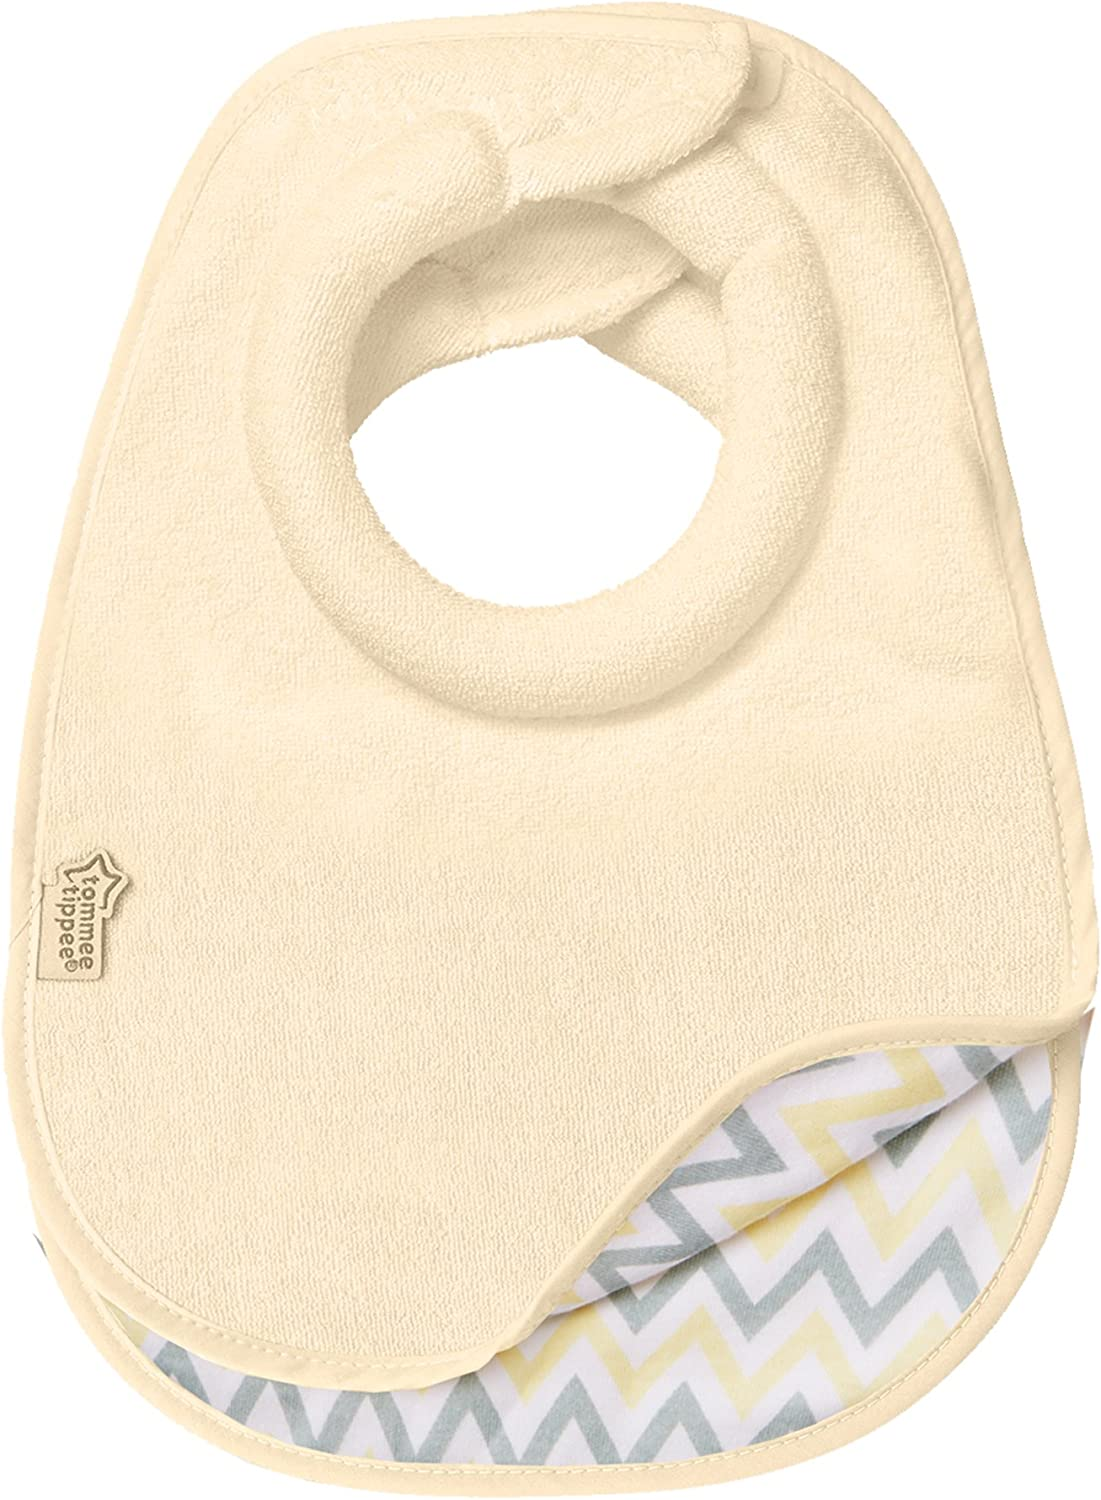 Tommee Tippee Closer To Nature 2 Lait Alimentation Bavoir absorbant Dribble Catcher